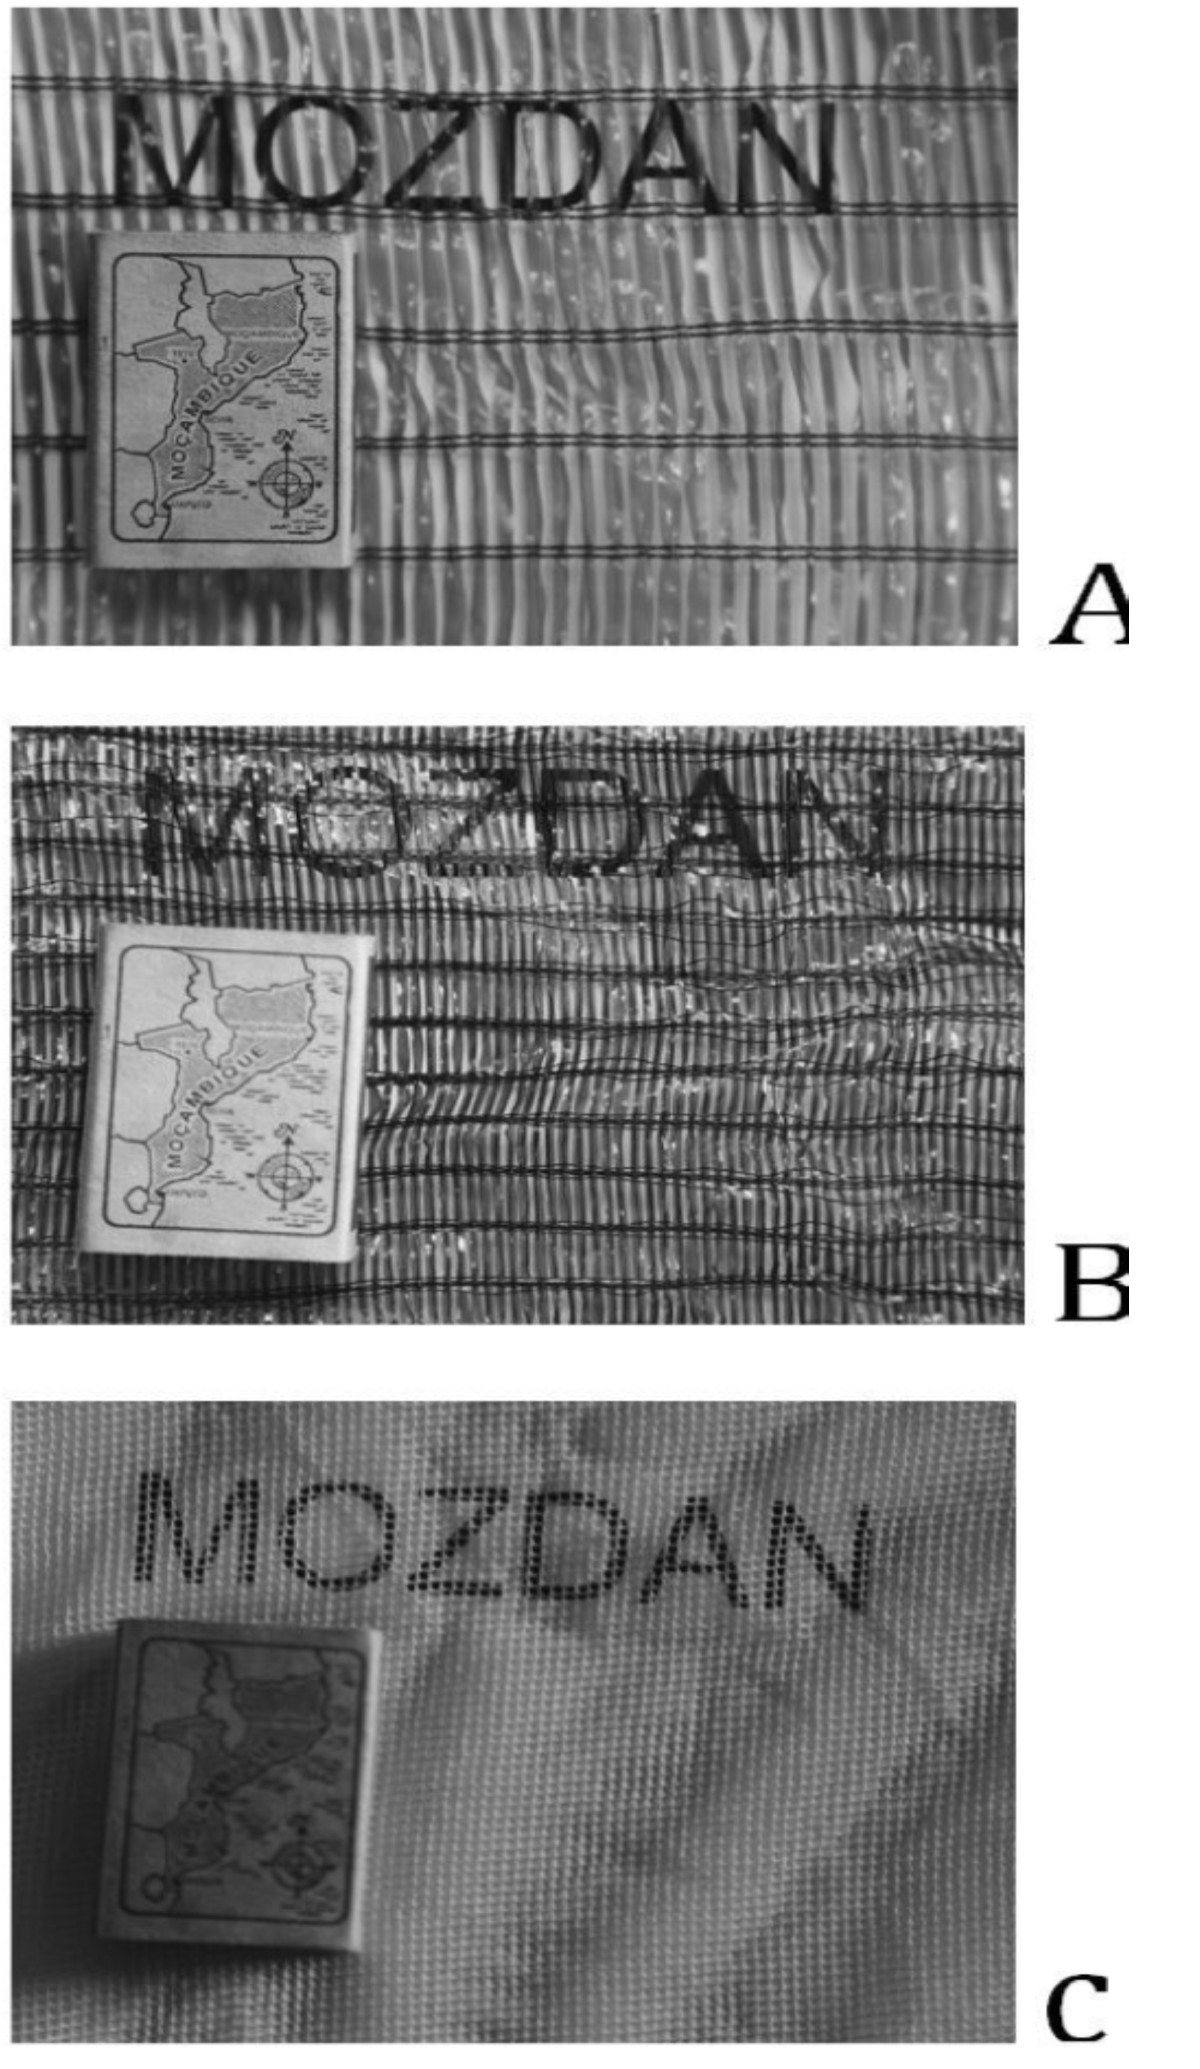 https://static-content.springer.com/image/art%3A10.1186%2F1475-2875-12-99/MediaObjects/12936_2013_Article_2691_Fig1_HTML.jpg